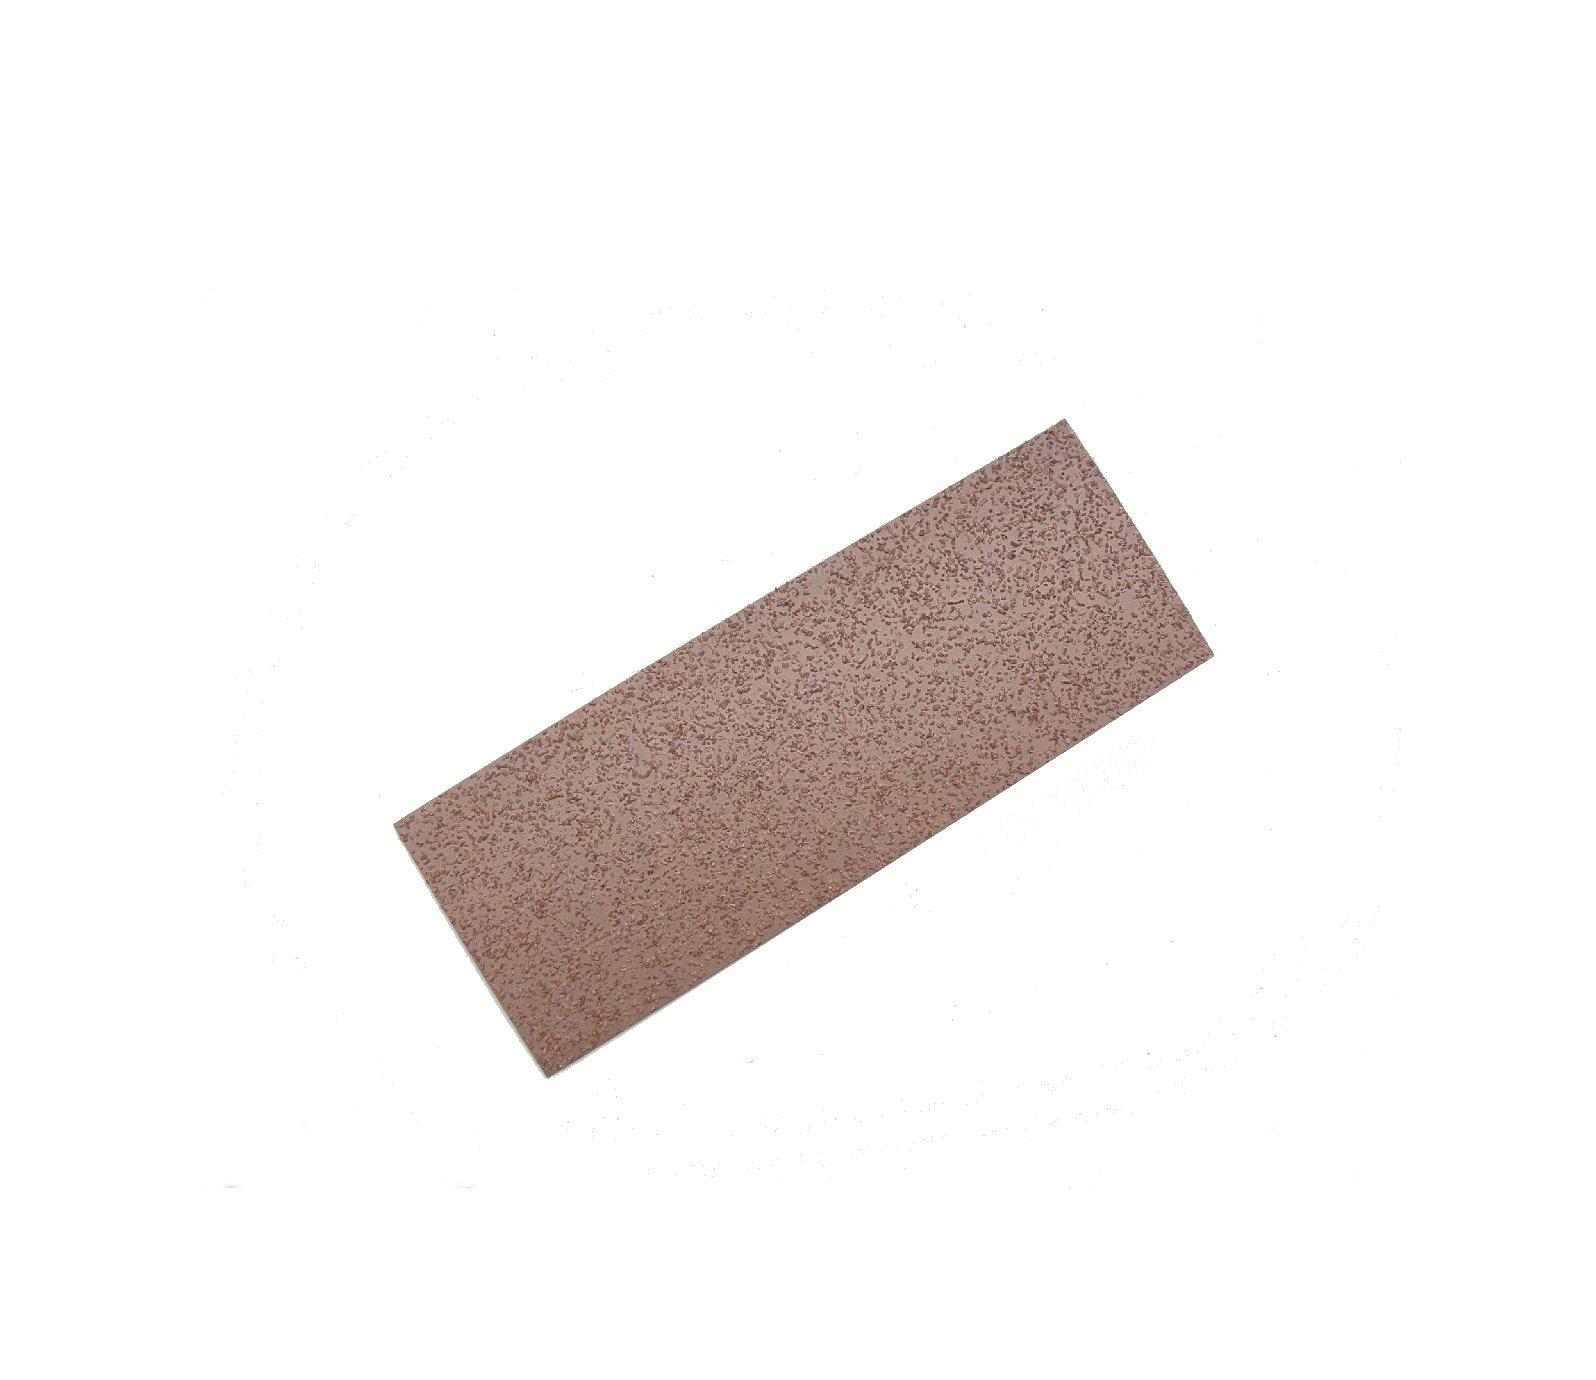 Flexible File140 x 51 mm COARSE